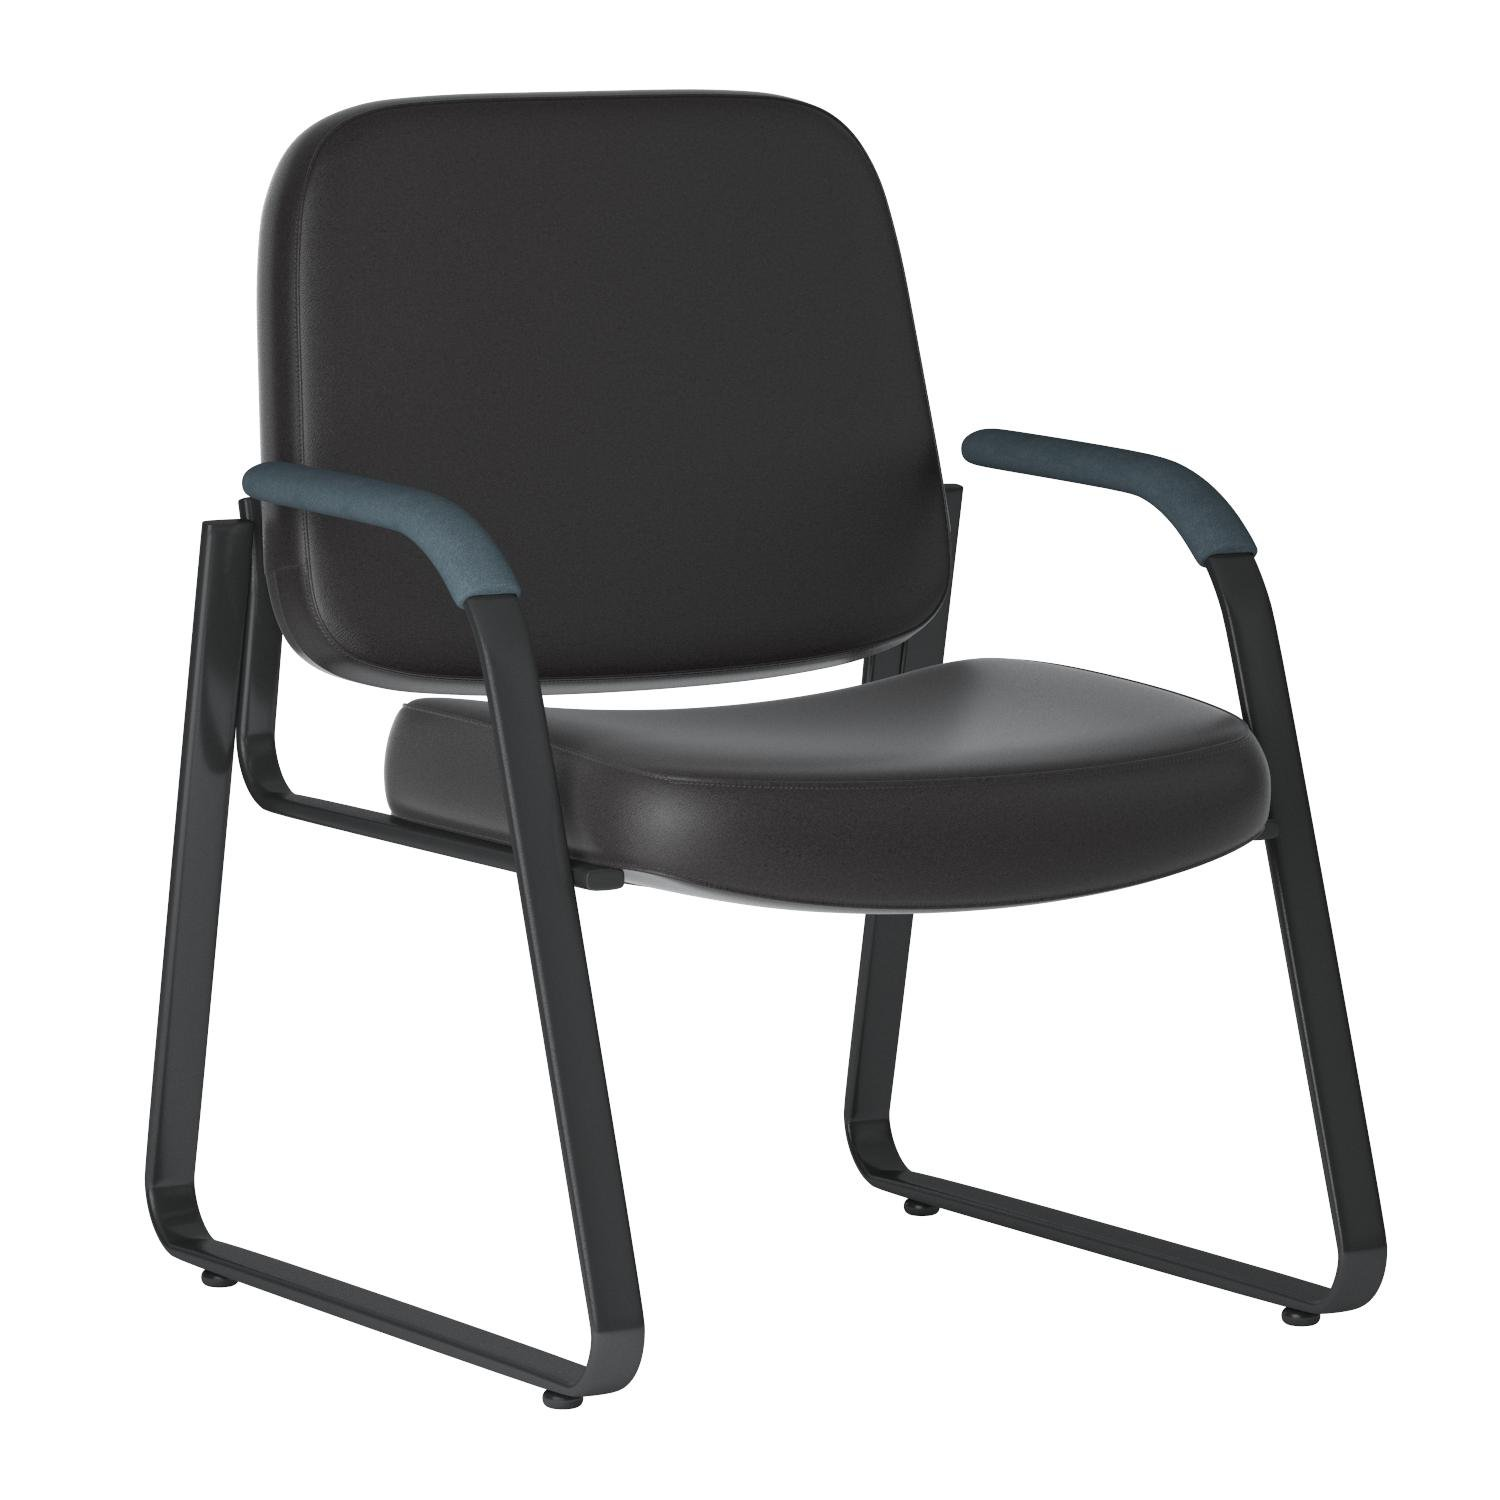 OFM Model 403-VAM Guest and Reception Chair with Arms, Anti-Microbial/Anti-Bacterial Vinyl, Black by OFM (Image #5)